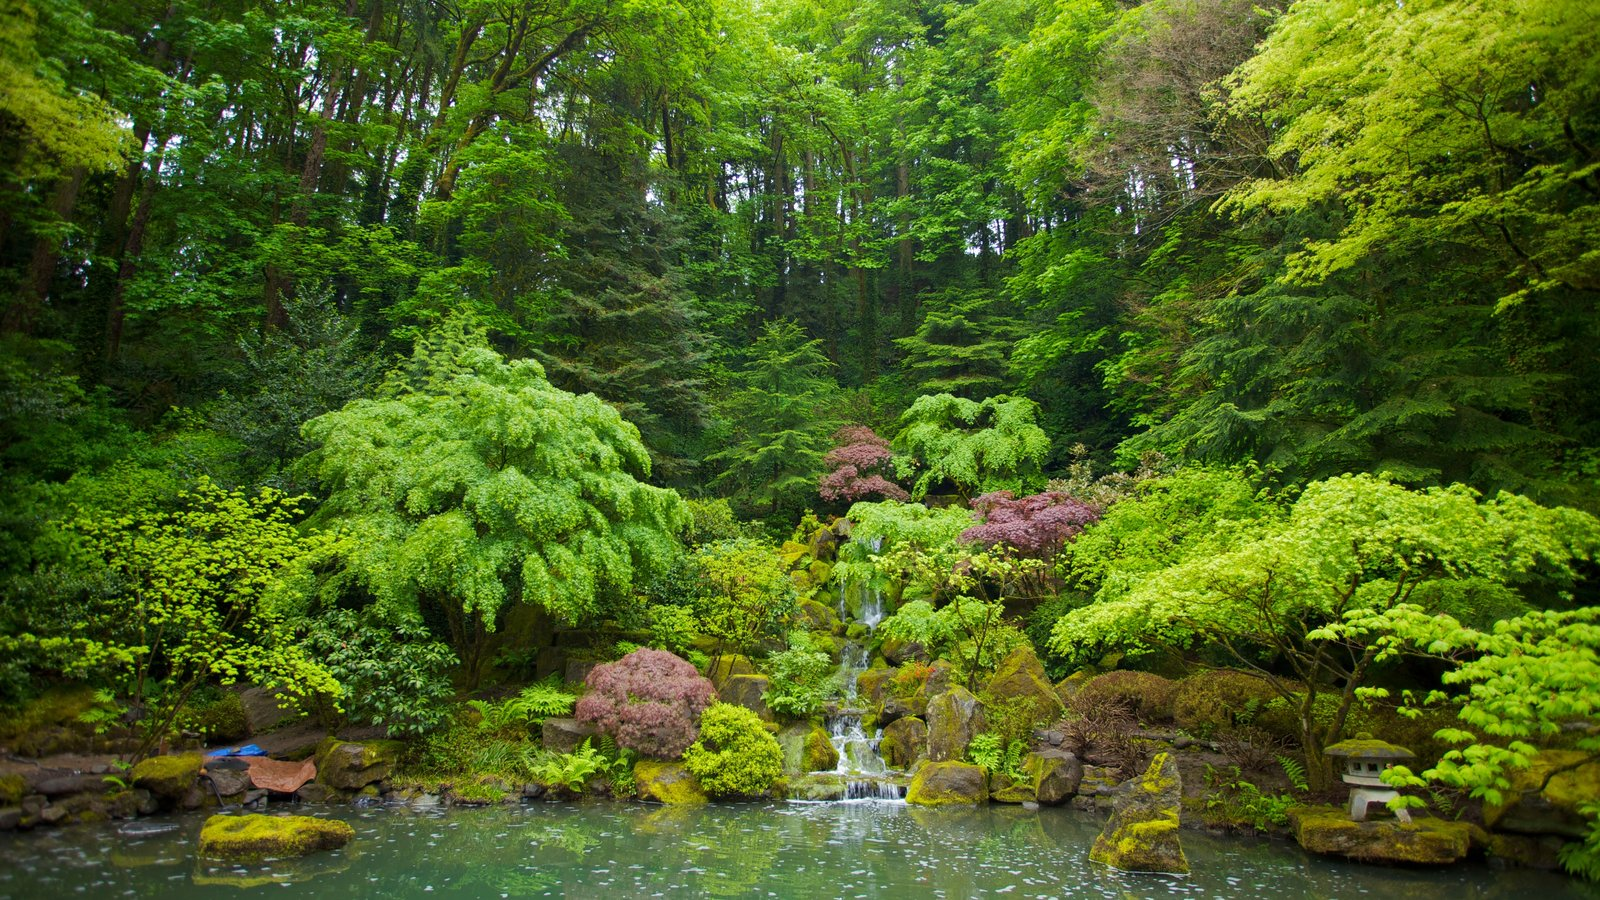 Portland japanese garden pictures view photos images of portland japanese garden - Japanese garden ...